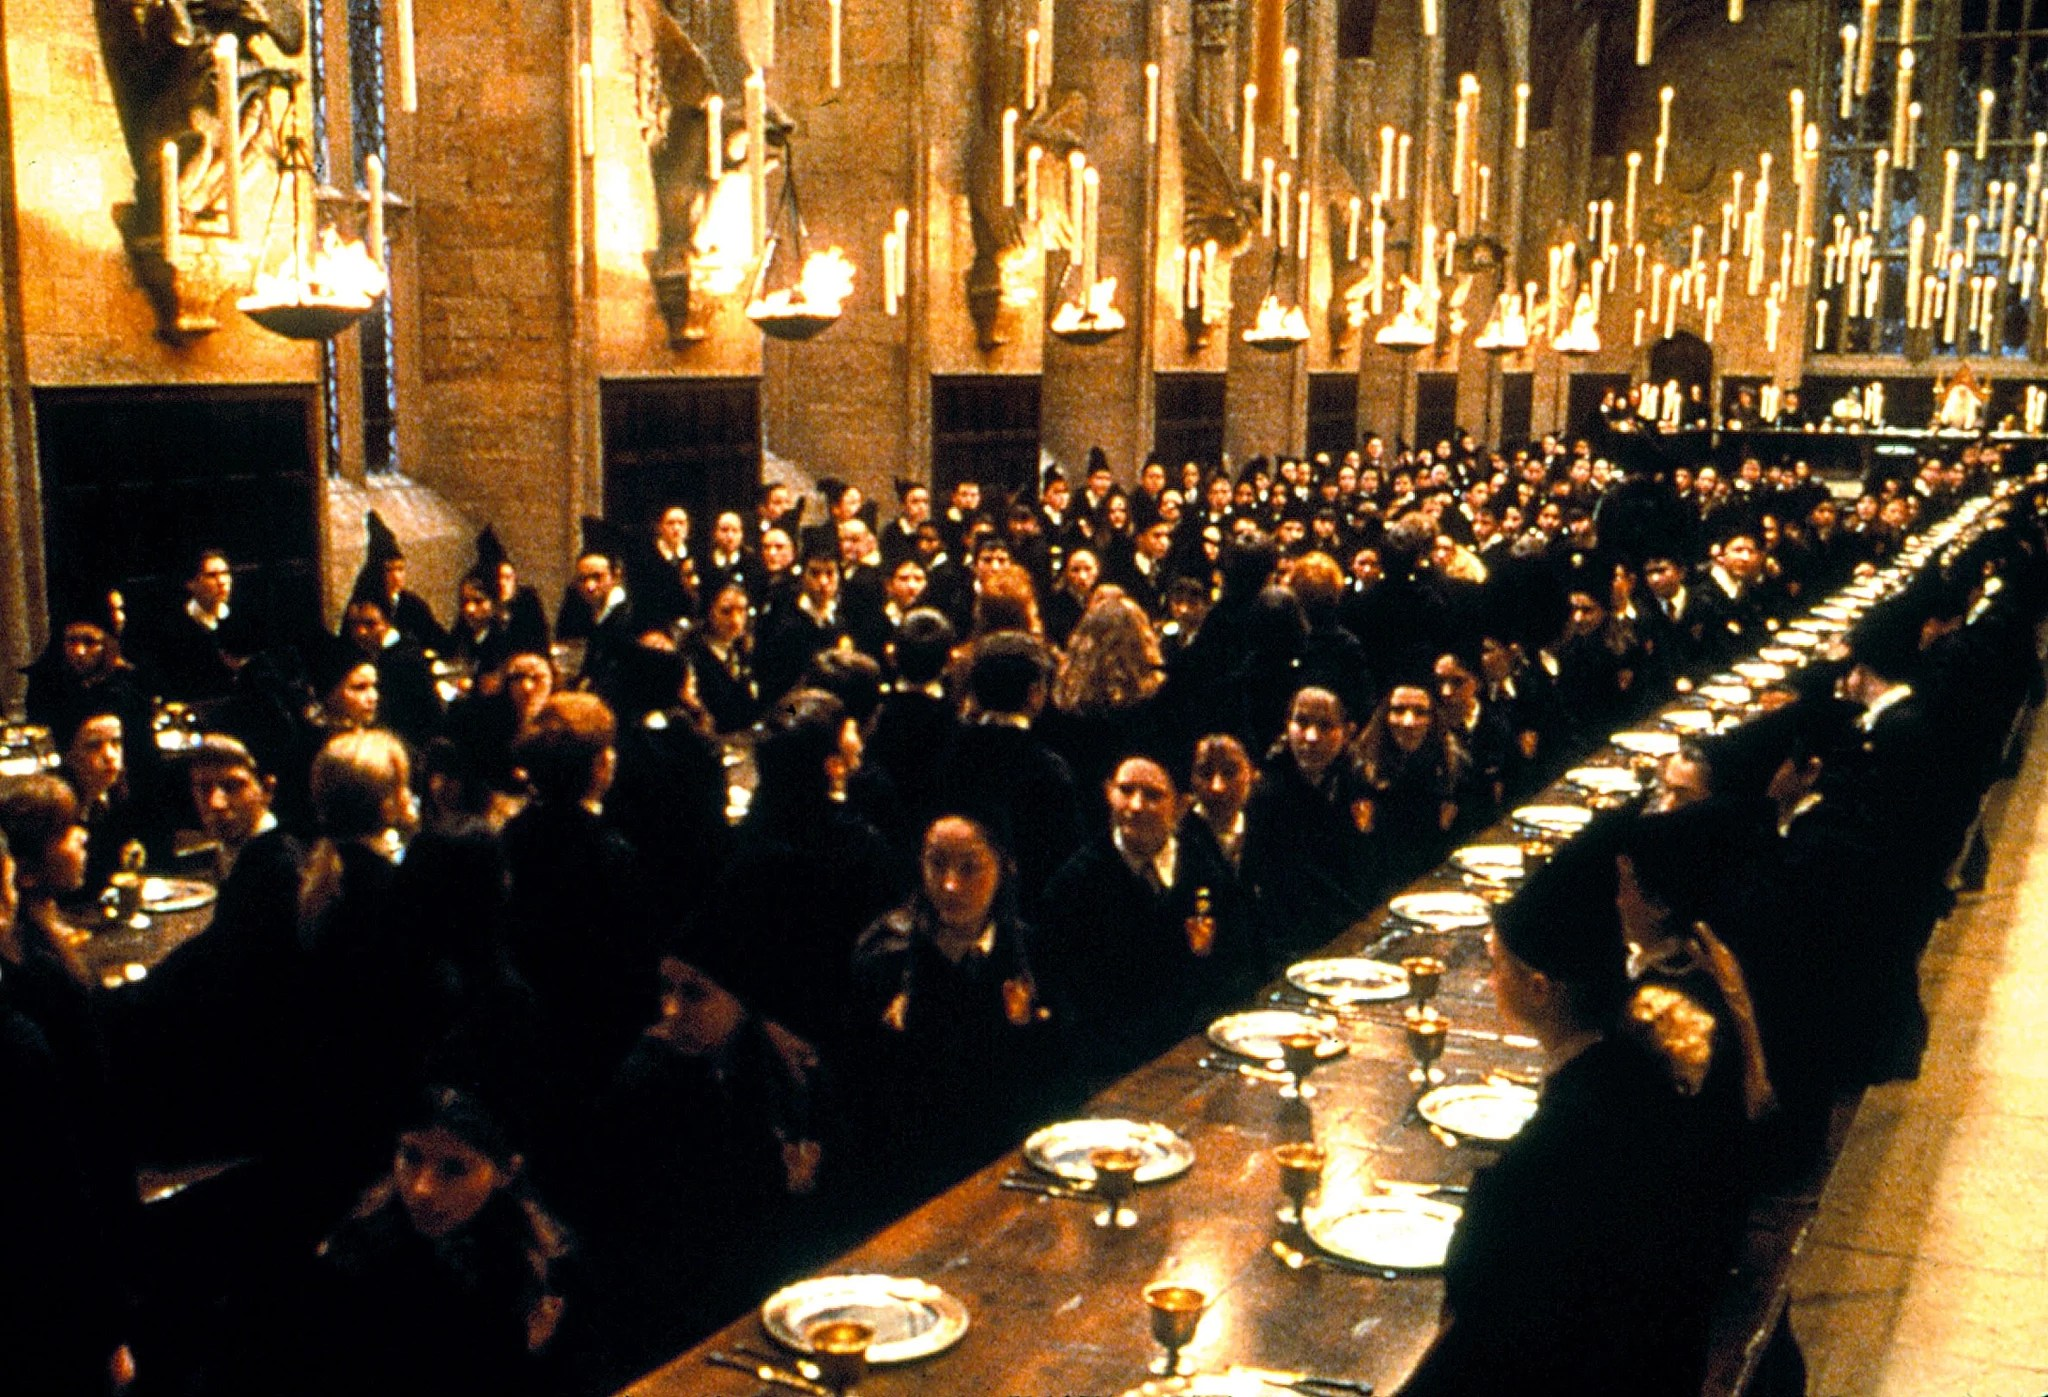 Why Is Harry Potter S Hogwarts Class So Small